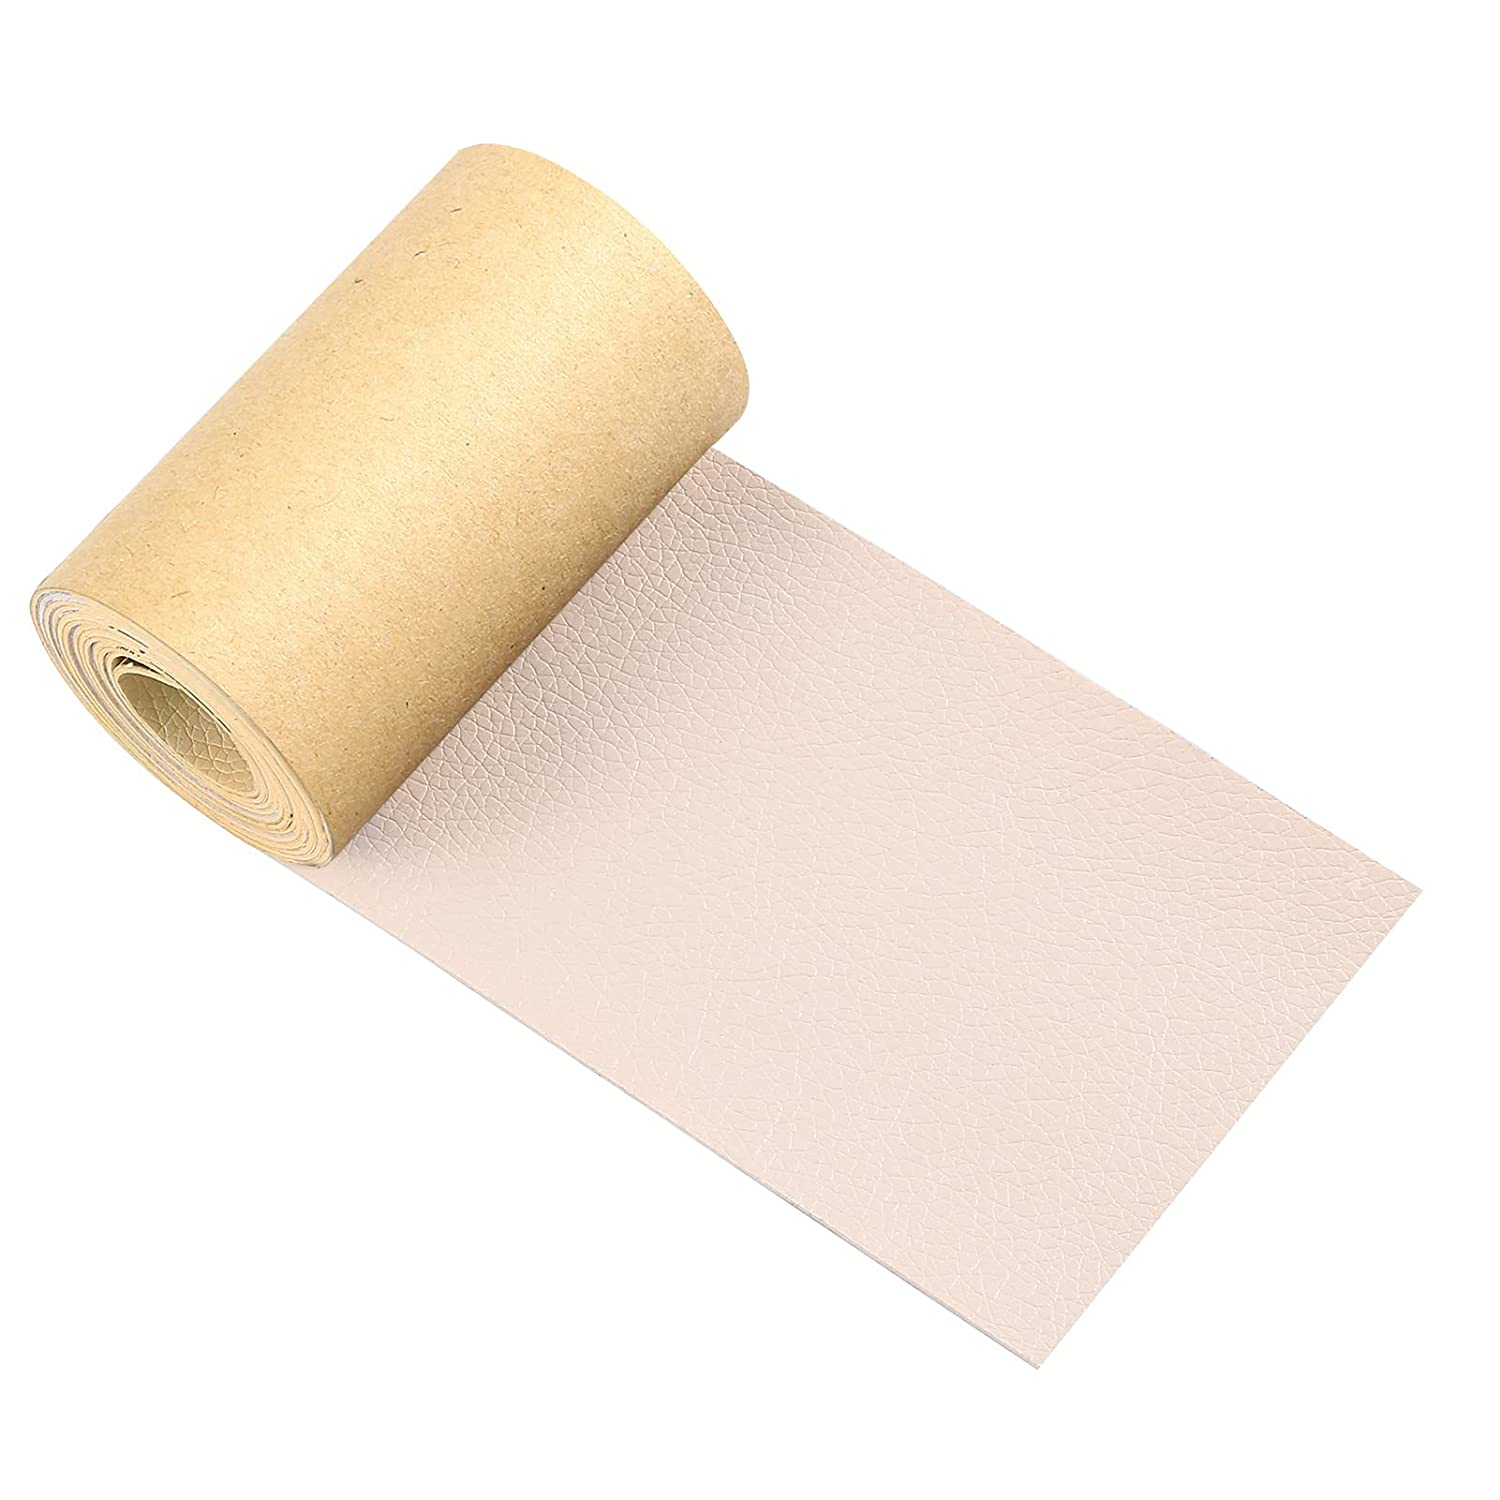 Leather Repair Tape, 3 X 60 Inch Self-Adhesive Leather Repair Patch, Upholstery Repair Tape for Furniture, Couches, Sofas, Car Seats, Driver Seat, Handbags, Jackets, Shoes (Beige, 3X60 inch)